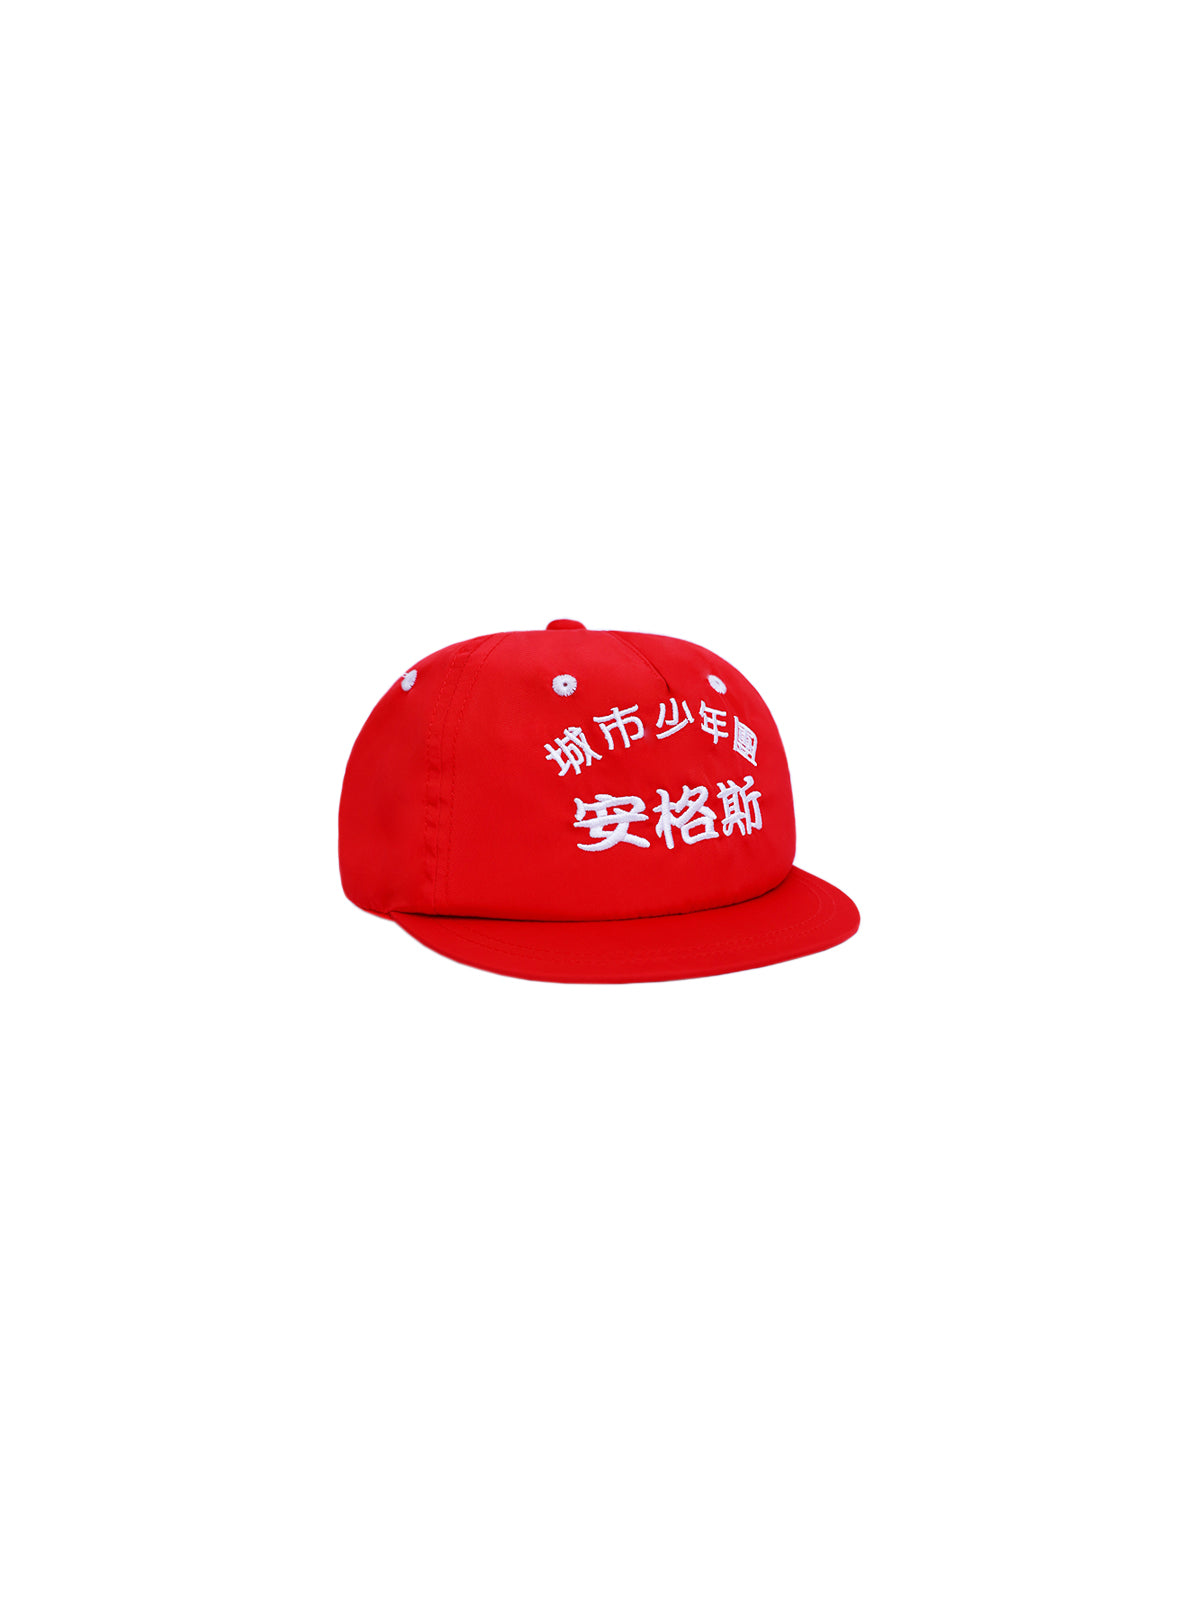 'Angus City Boy Gang' Cap Red